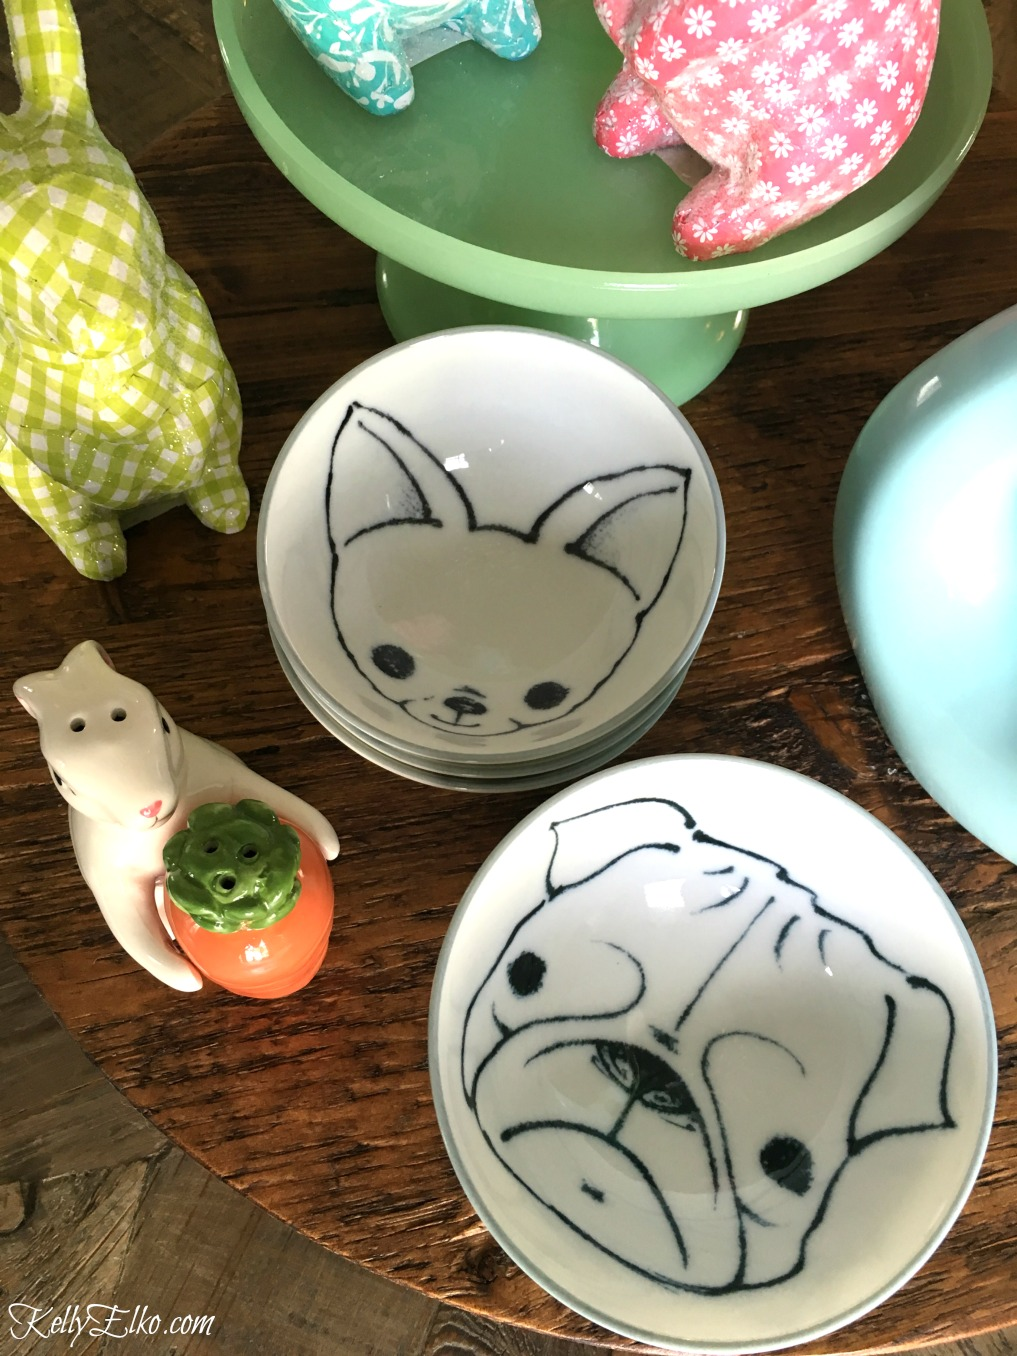 Love these adorable bowls with dogs painted on them kellyelko.com